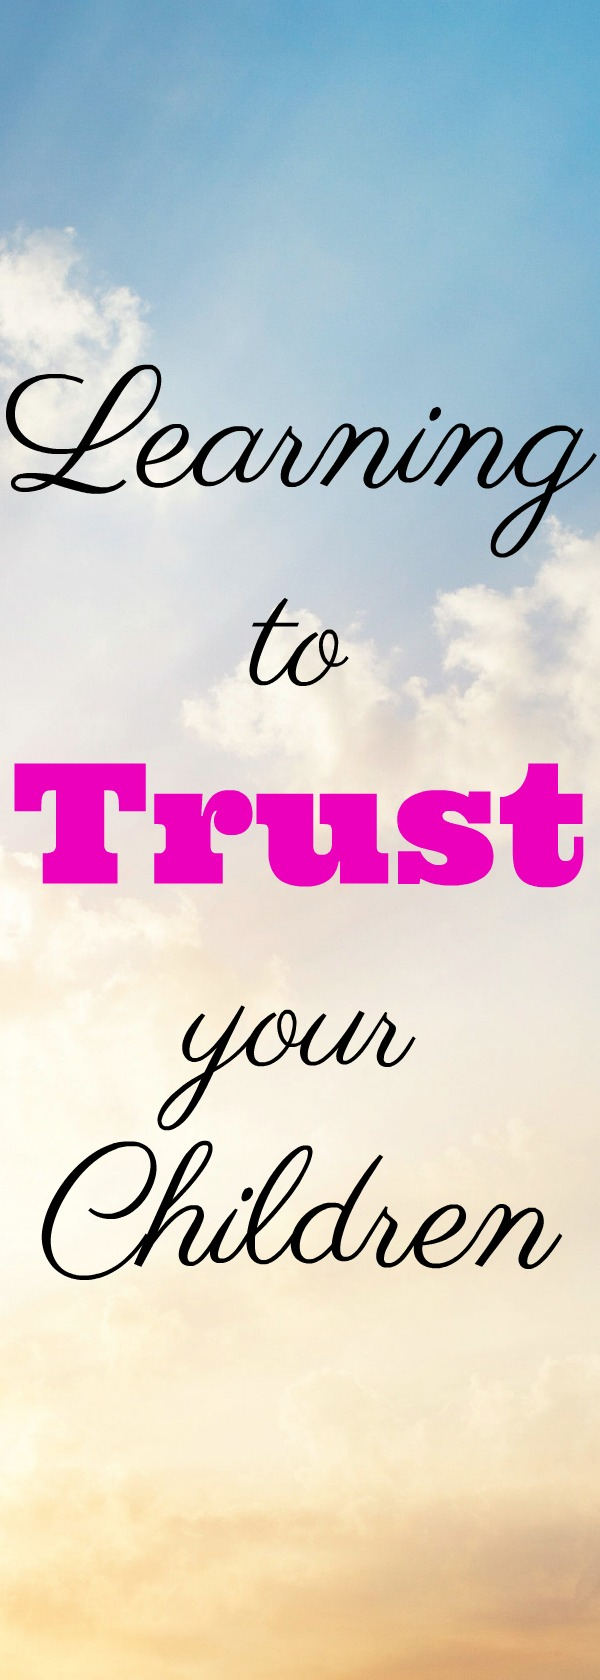 Learning to trust your children can be hard, yet it is one of the most important things we can do.